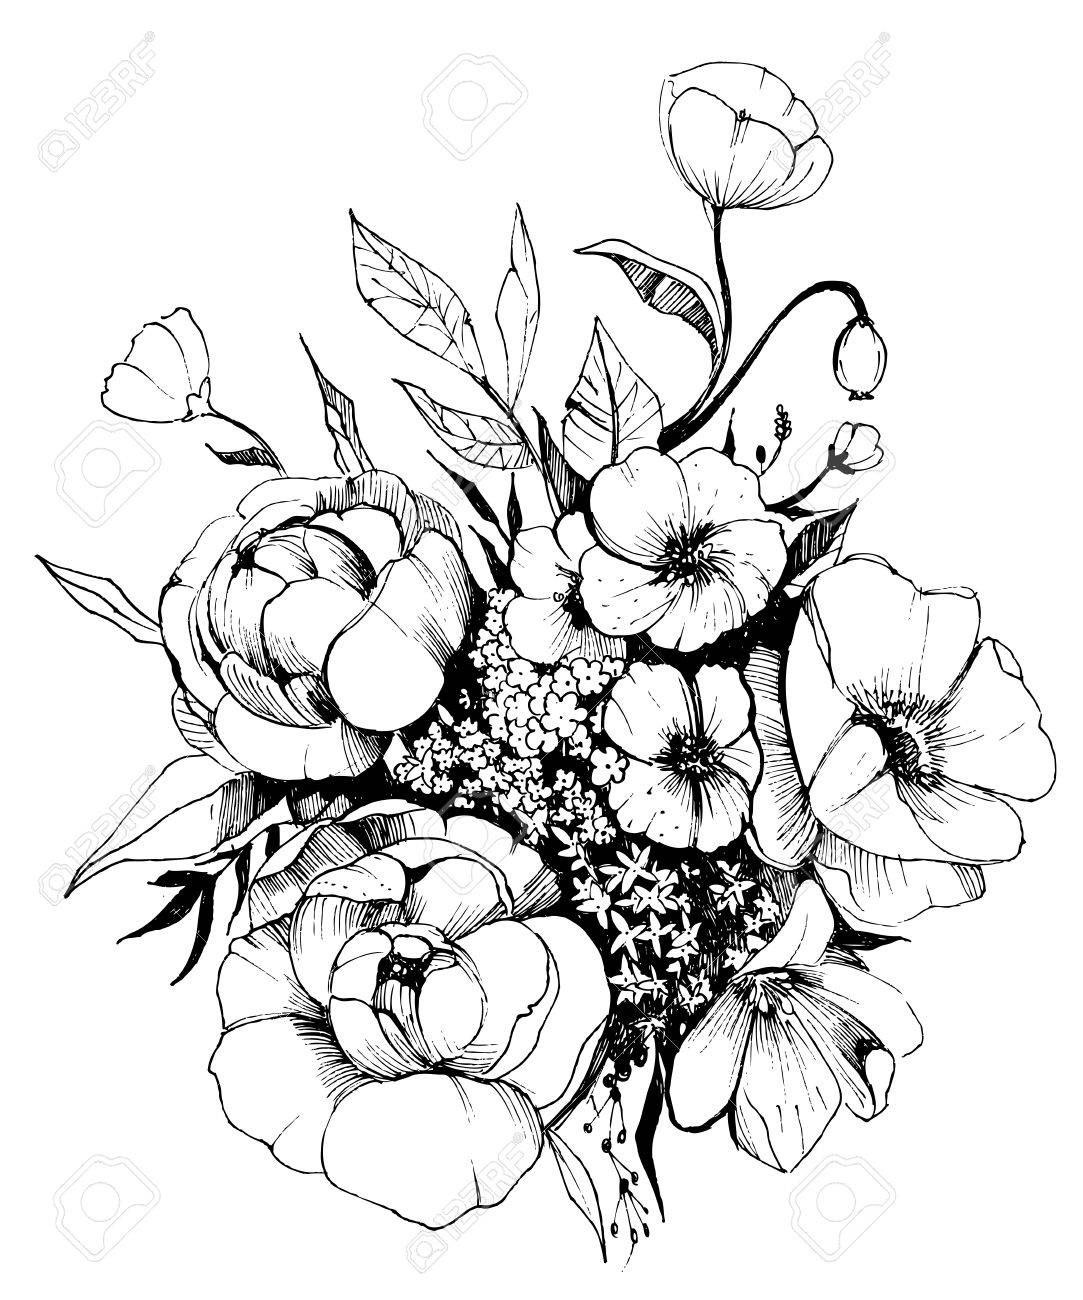 Flower drawing vector at getdrawings free for personal use 1083x1300 flowers bouquet vector sketch royalty free cliparts vectors izmirmasajfo